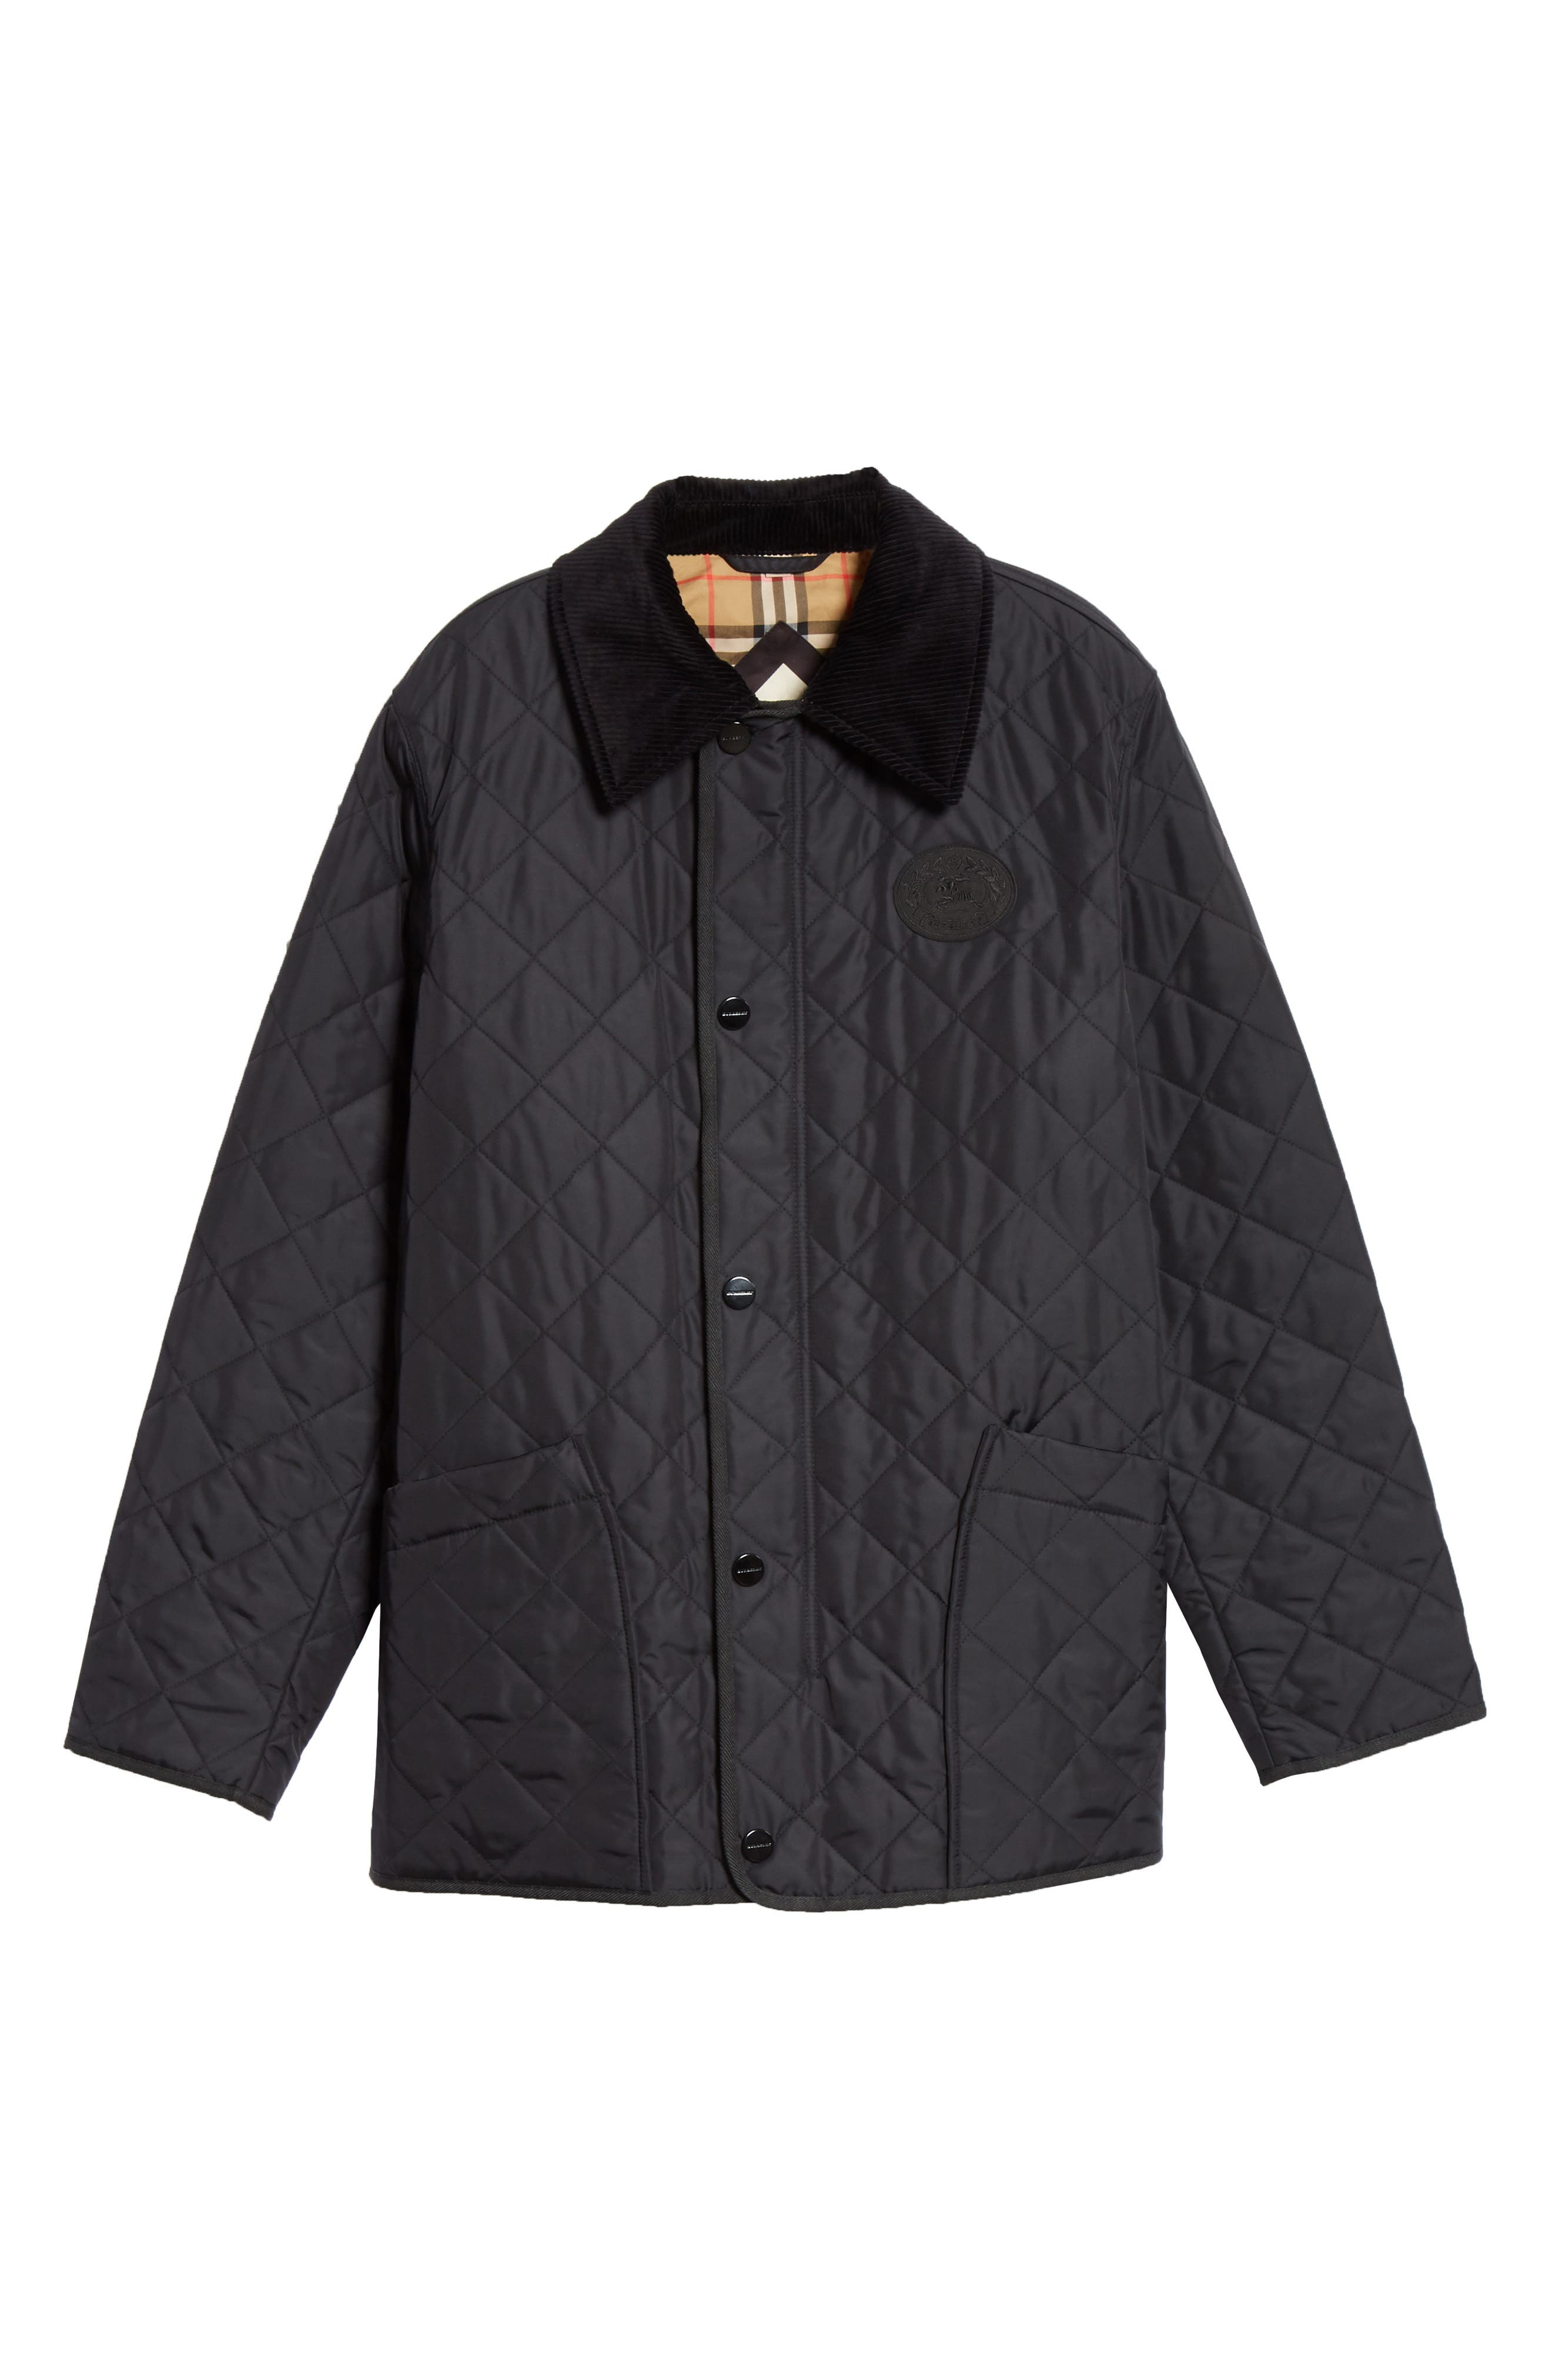 BURBERRY,                             Cotswold Quilted Jacket,                             Alternate thumbnail 5, color,                             BLACK